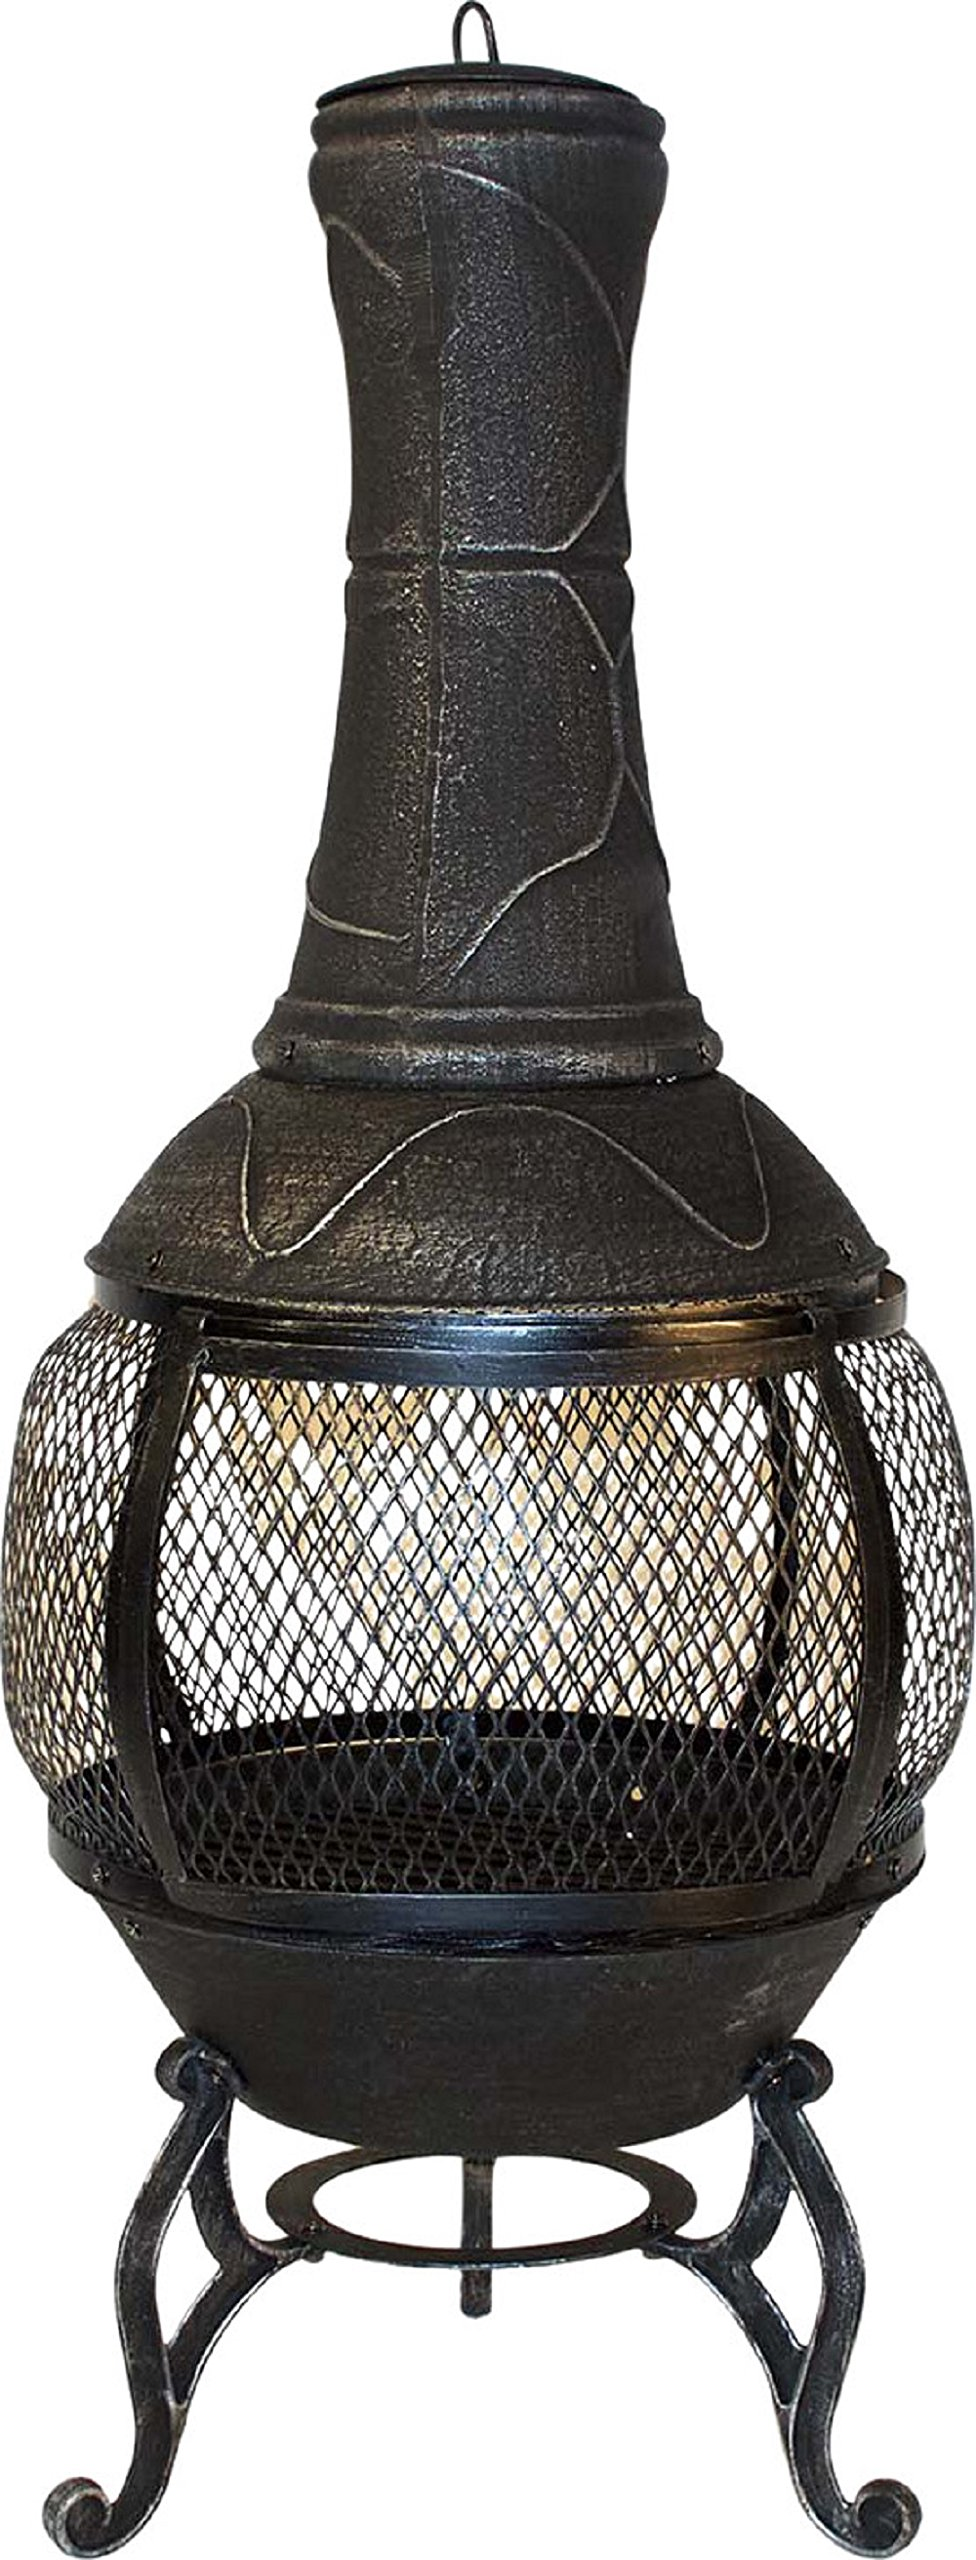 Harbor Gardens LF92B Horizon Brushed 46'' Outdoor Steel Chiminea Fireplace by Harbor Gardens